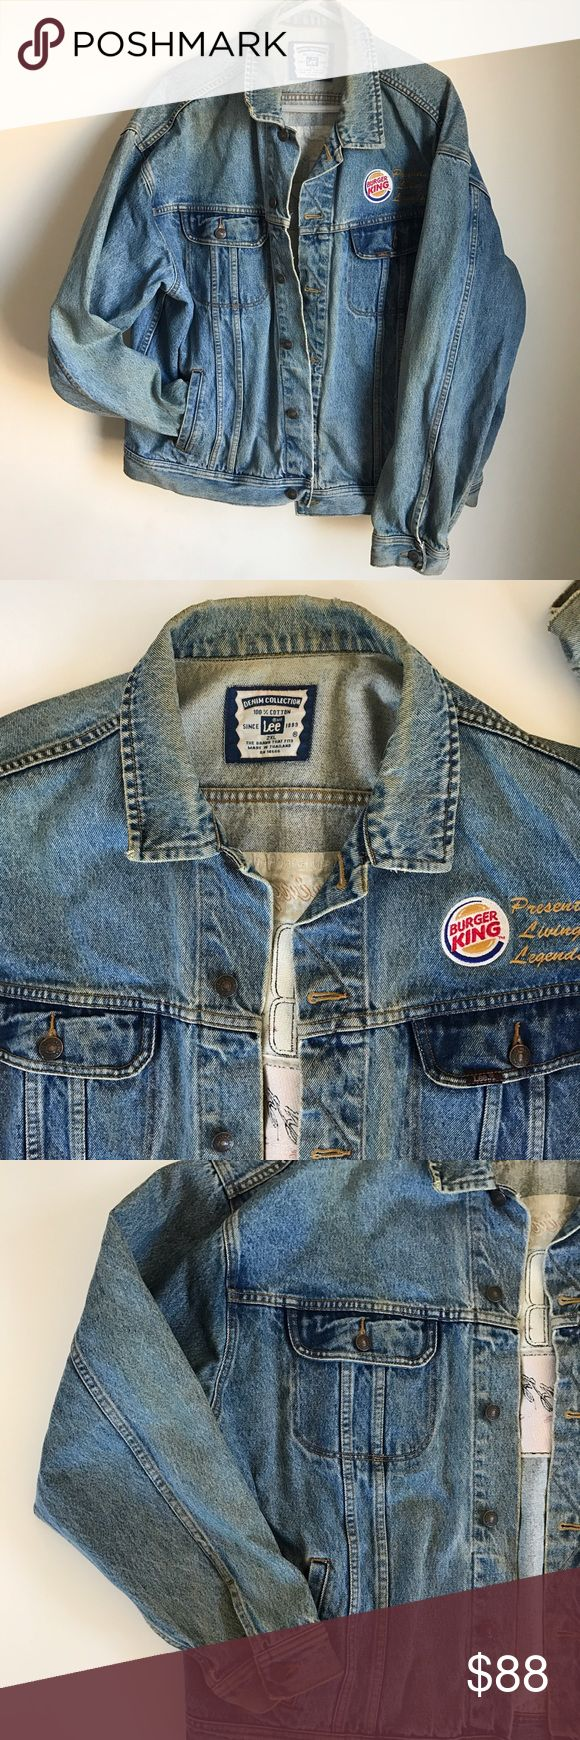 "Vintage Lee Jean Jacket Vintage Lee Jean Jacket. 90's. Features patches from Burger King. Sponsors of events & contests that took place during Black Music Month. (June) Bright colored vibrant patches on the back featuring different types of music. Size 2XL. Does have some typical ""Jean discoloration"" throughout giving it a genuine distressed look. No other flaws. (Pictured in the last photo.) Four front functioning pockets. Lee Jackets & Coats"